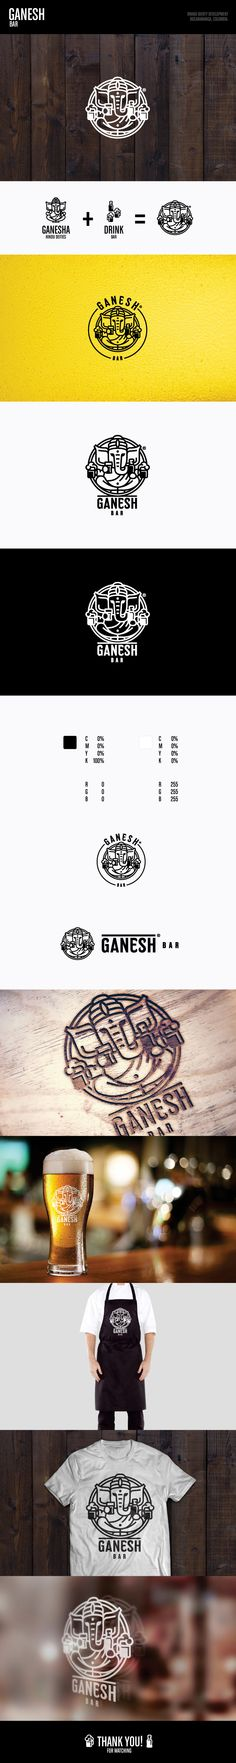 https://www.behance.net/gallery/20551213/Logo-Ganesh-Bar